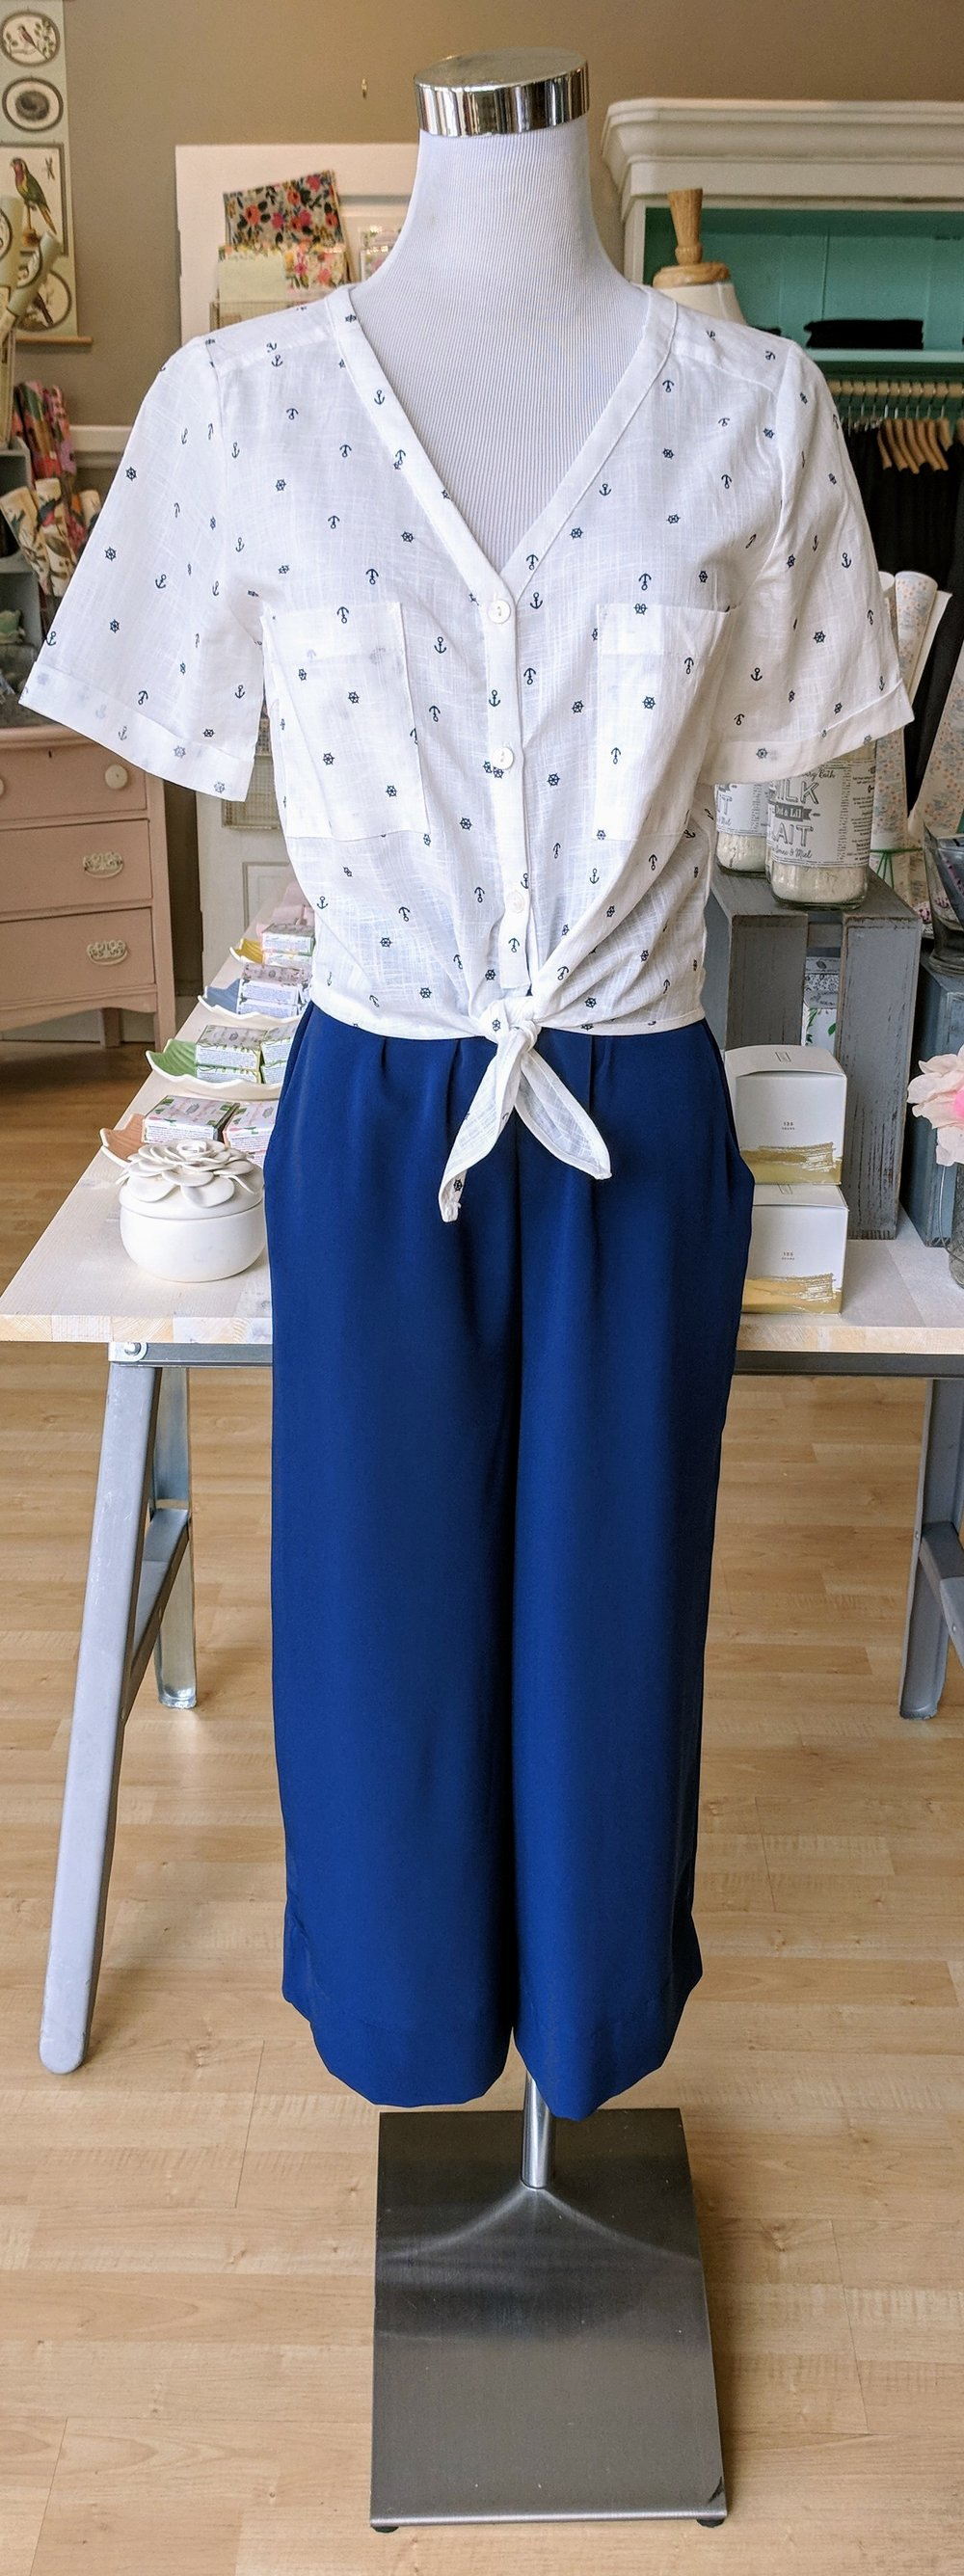 Blue culotte pant with white anchor print crop top.